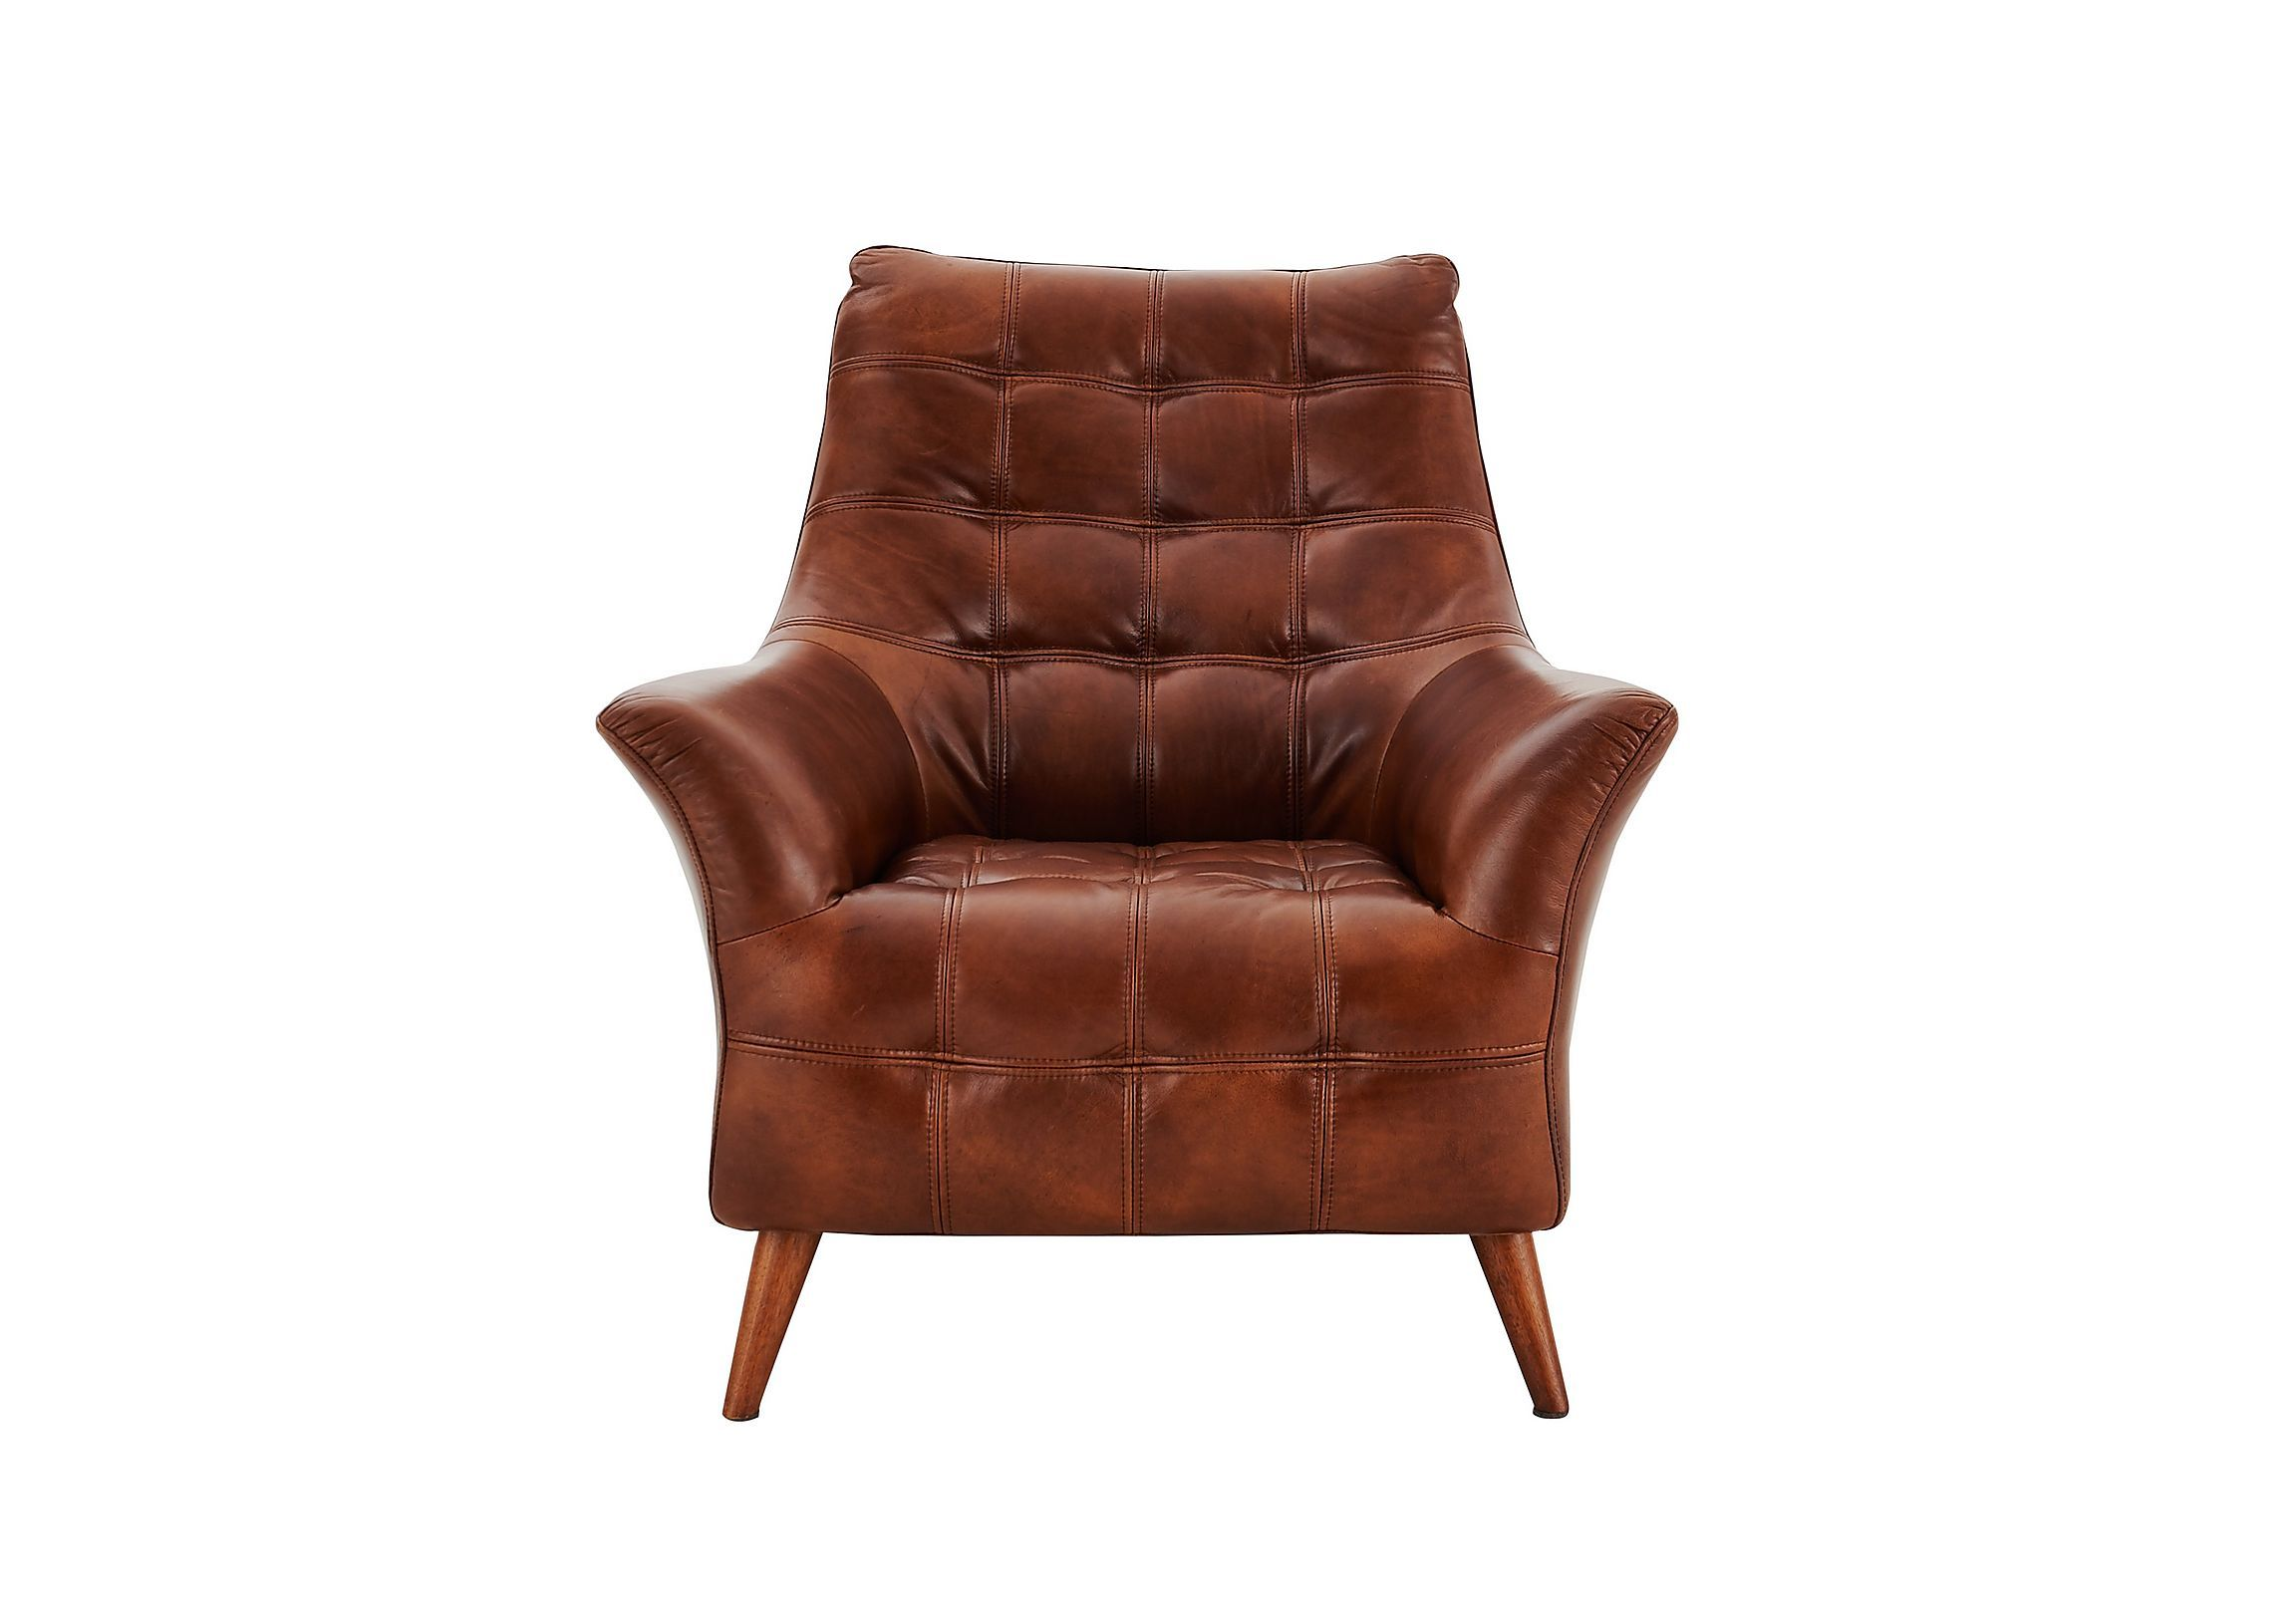 Chaser Armchair - Furniture Village | Leather armchair ...